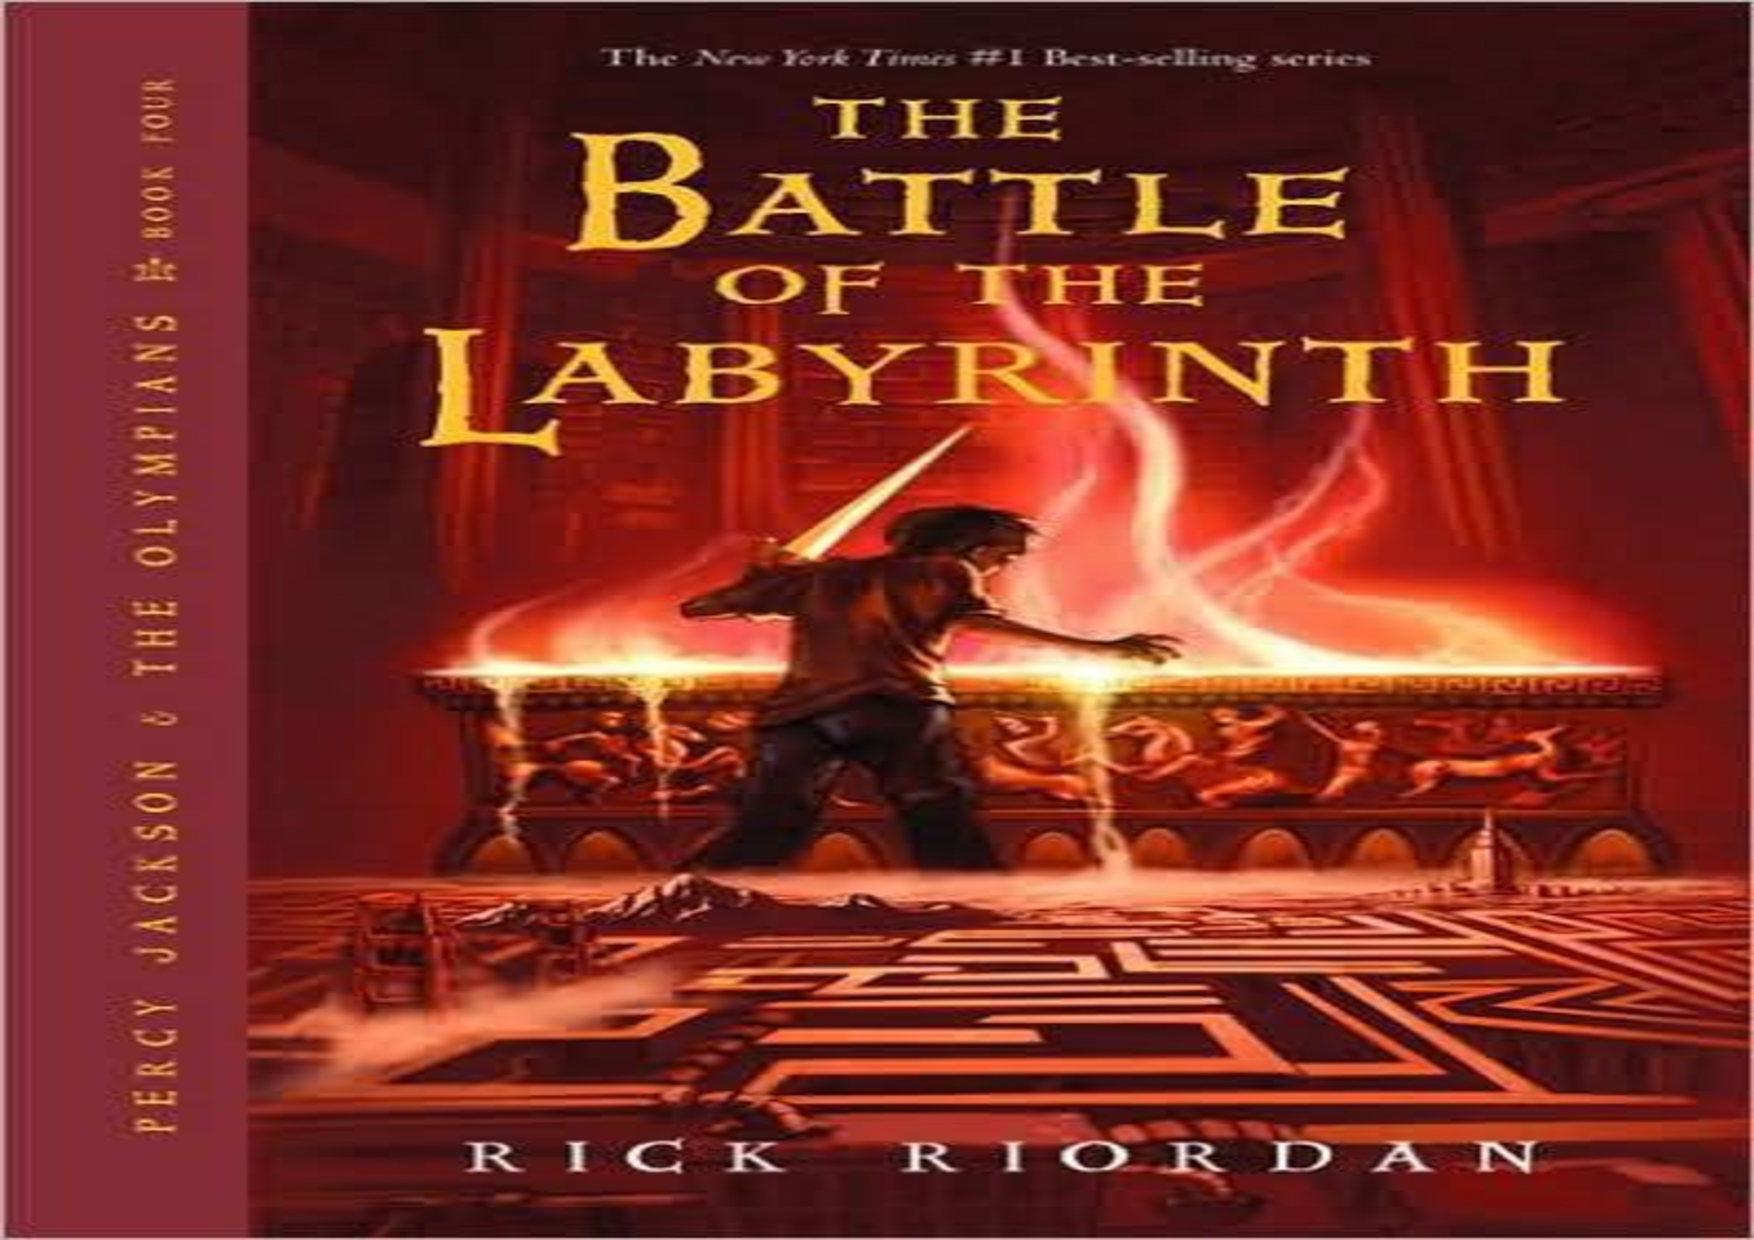 Battle Of The Labyrinth Quotes. QuotesGram